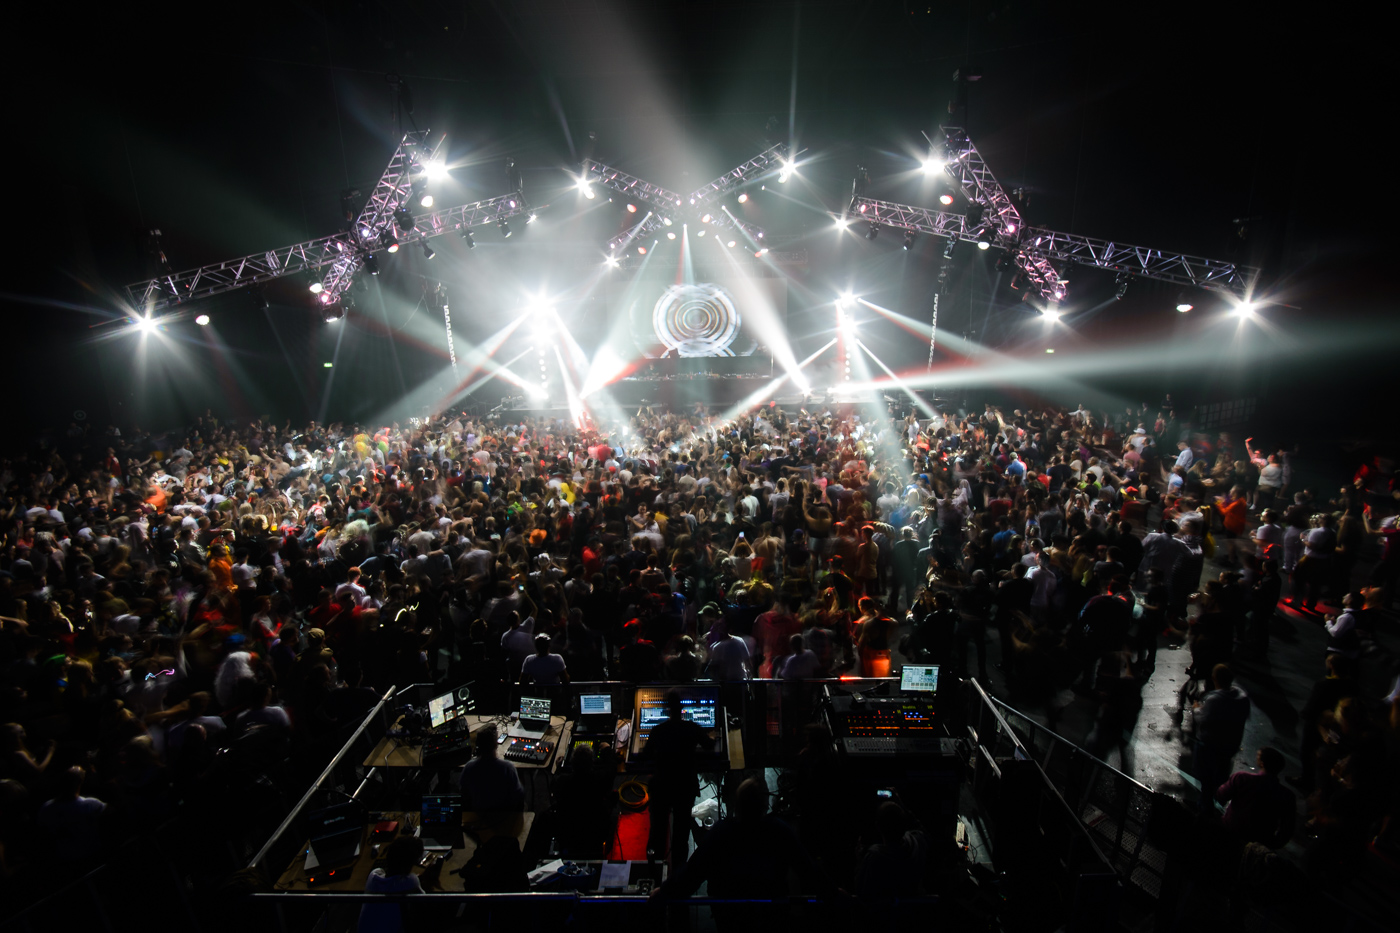 winterparty-at-3arena-dublin-30-10-2016-by-sean-smyth-49-of-53